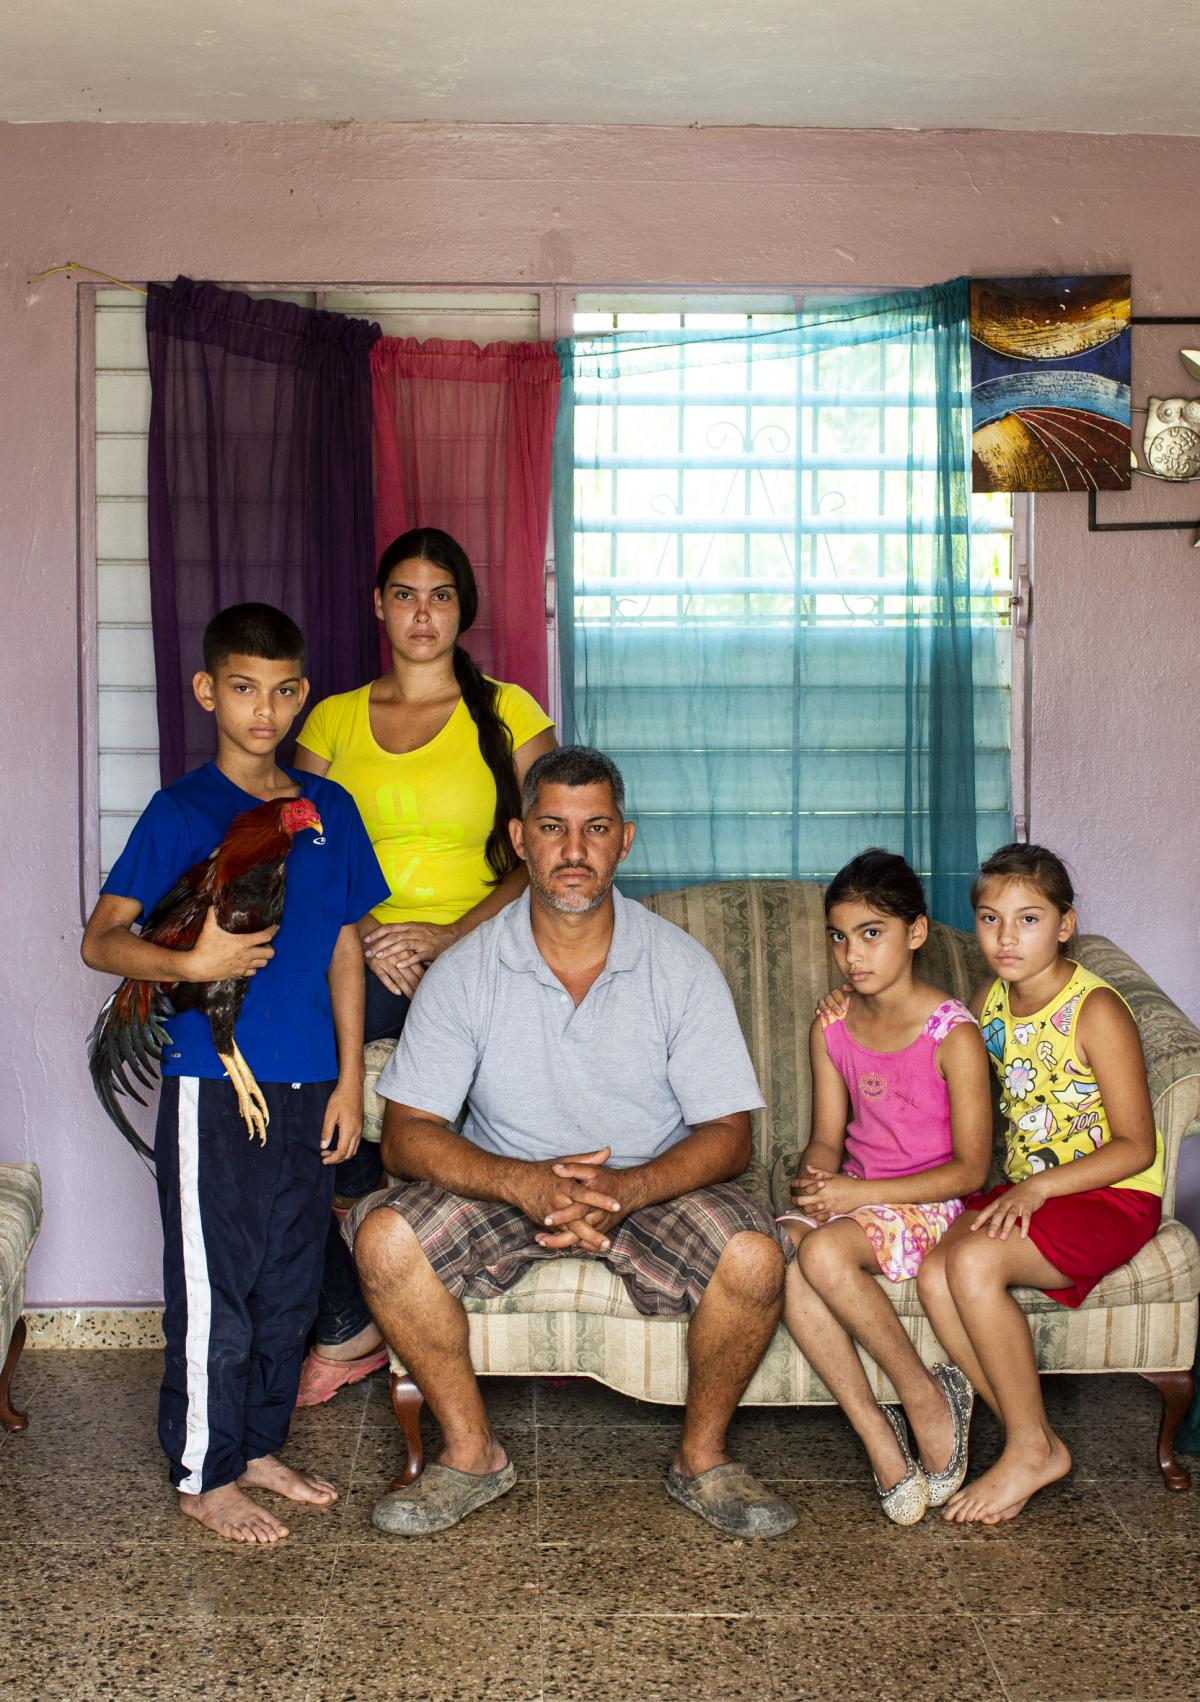 From left, José Yadiel Torres, 10, Lizmary Rivera, 29, José Torres, 38, and twins Janniela and Jamiléth Torres, 9, pose for a family portrait in their house in Utuado. The rooster, the family's most prized bird, is named Matatoro.